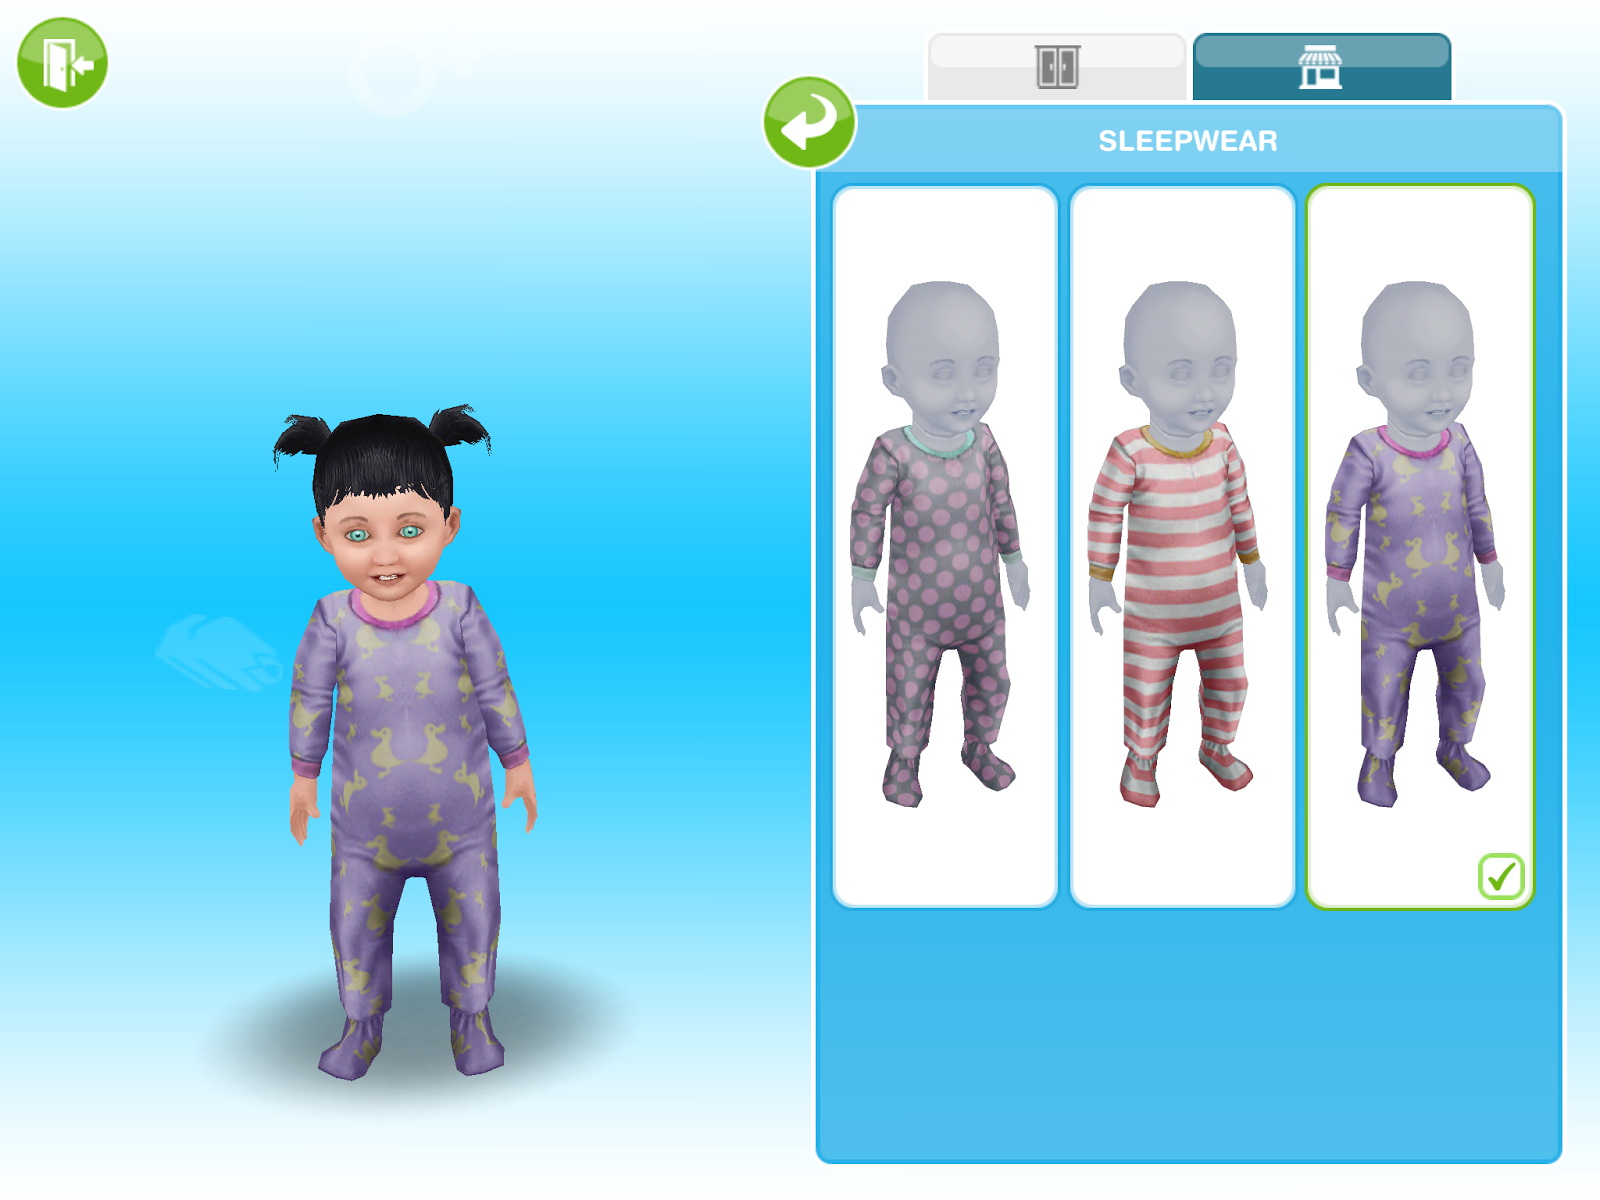 Missy39s Sims And Stuff The Sims Freeplay Sleepwear Event Guide